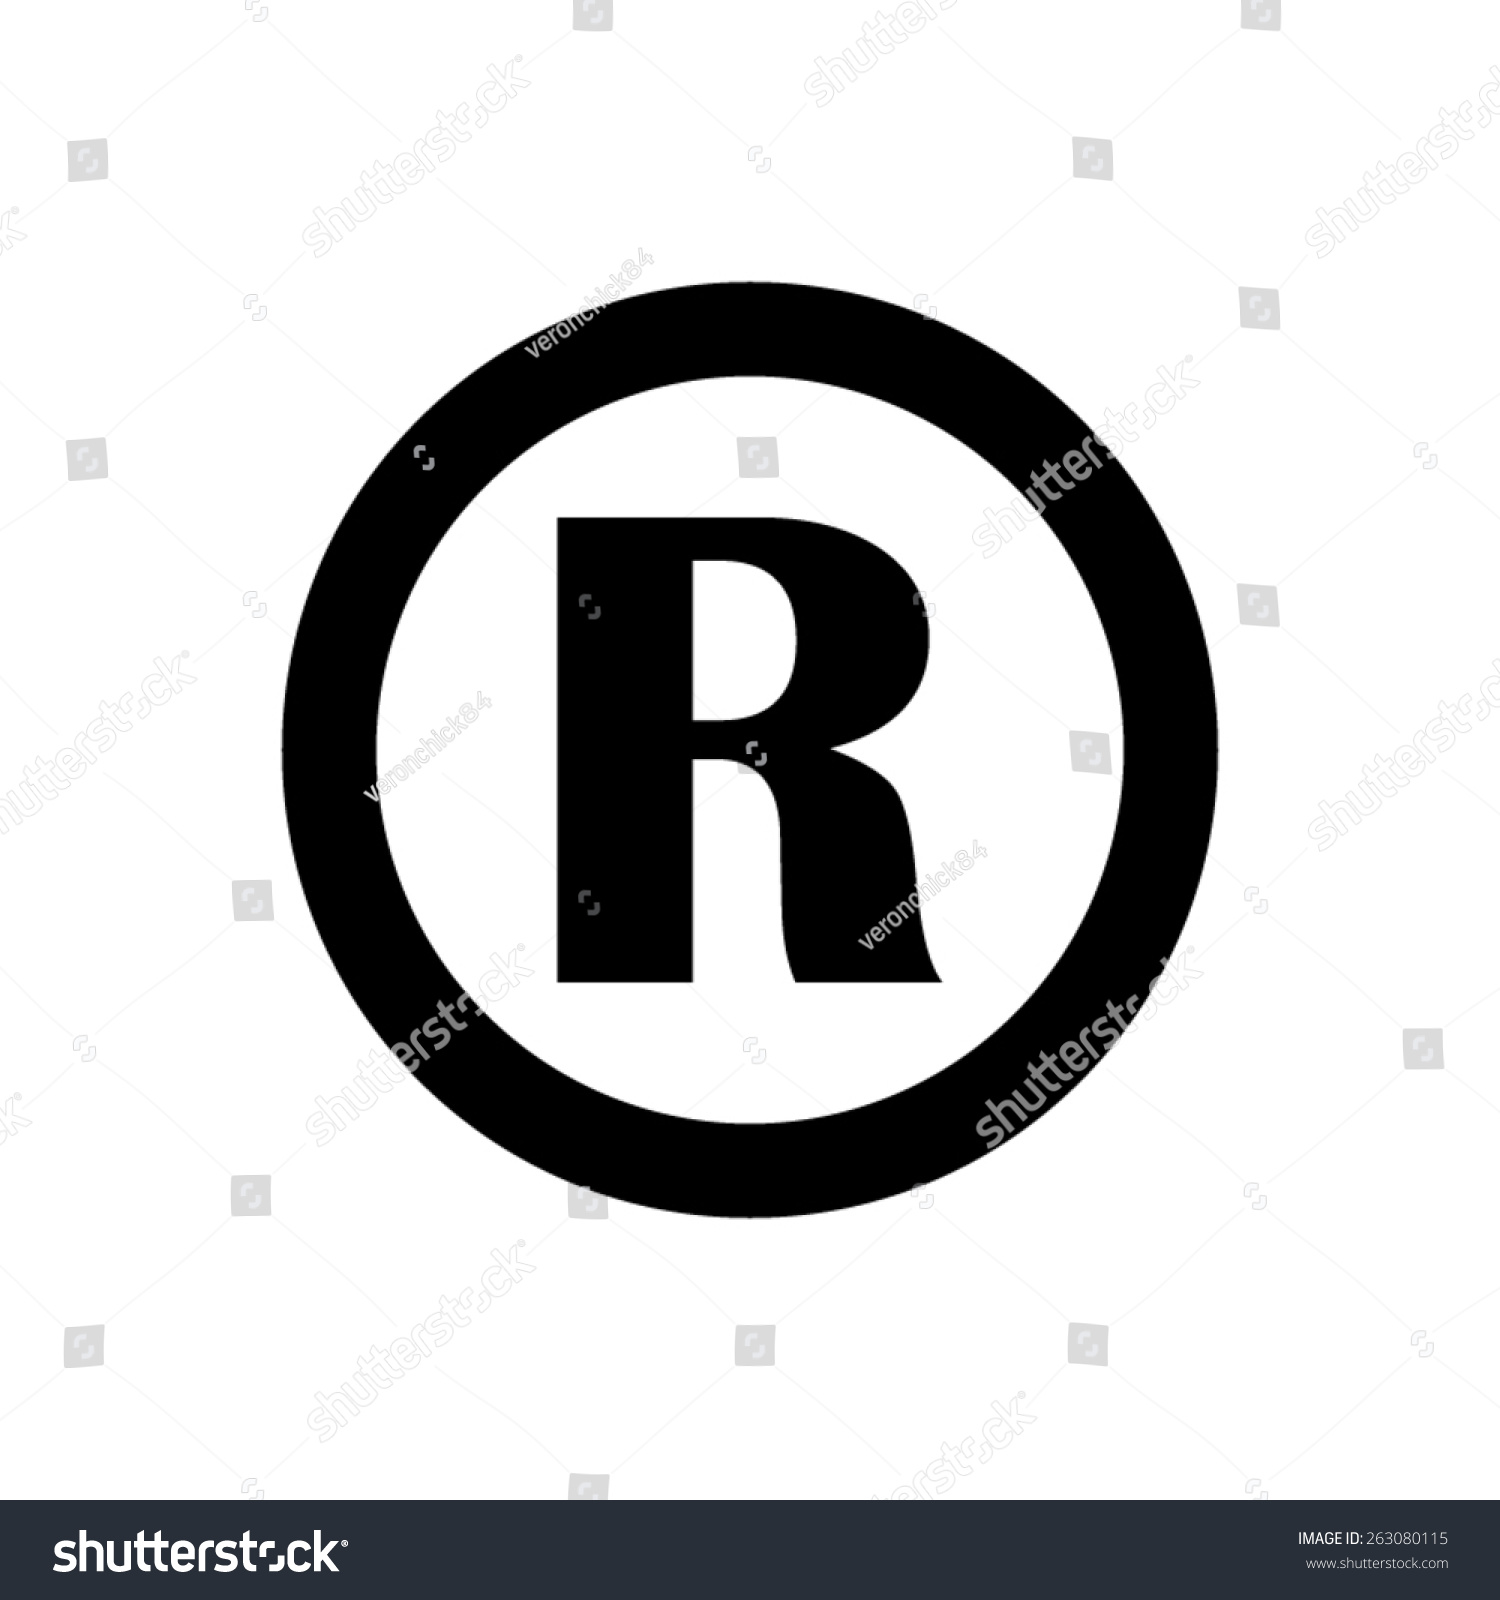 Registered trademark vector icon stock vector 263080115 shutterstock registered trademark vector icon biocorpaavc Choice Image